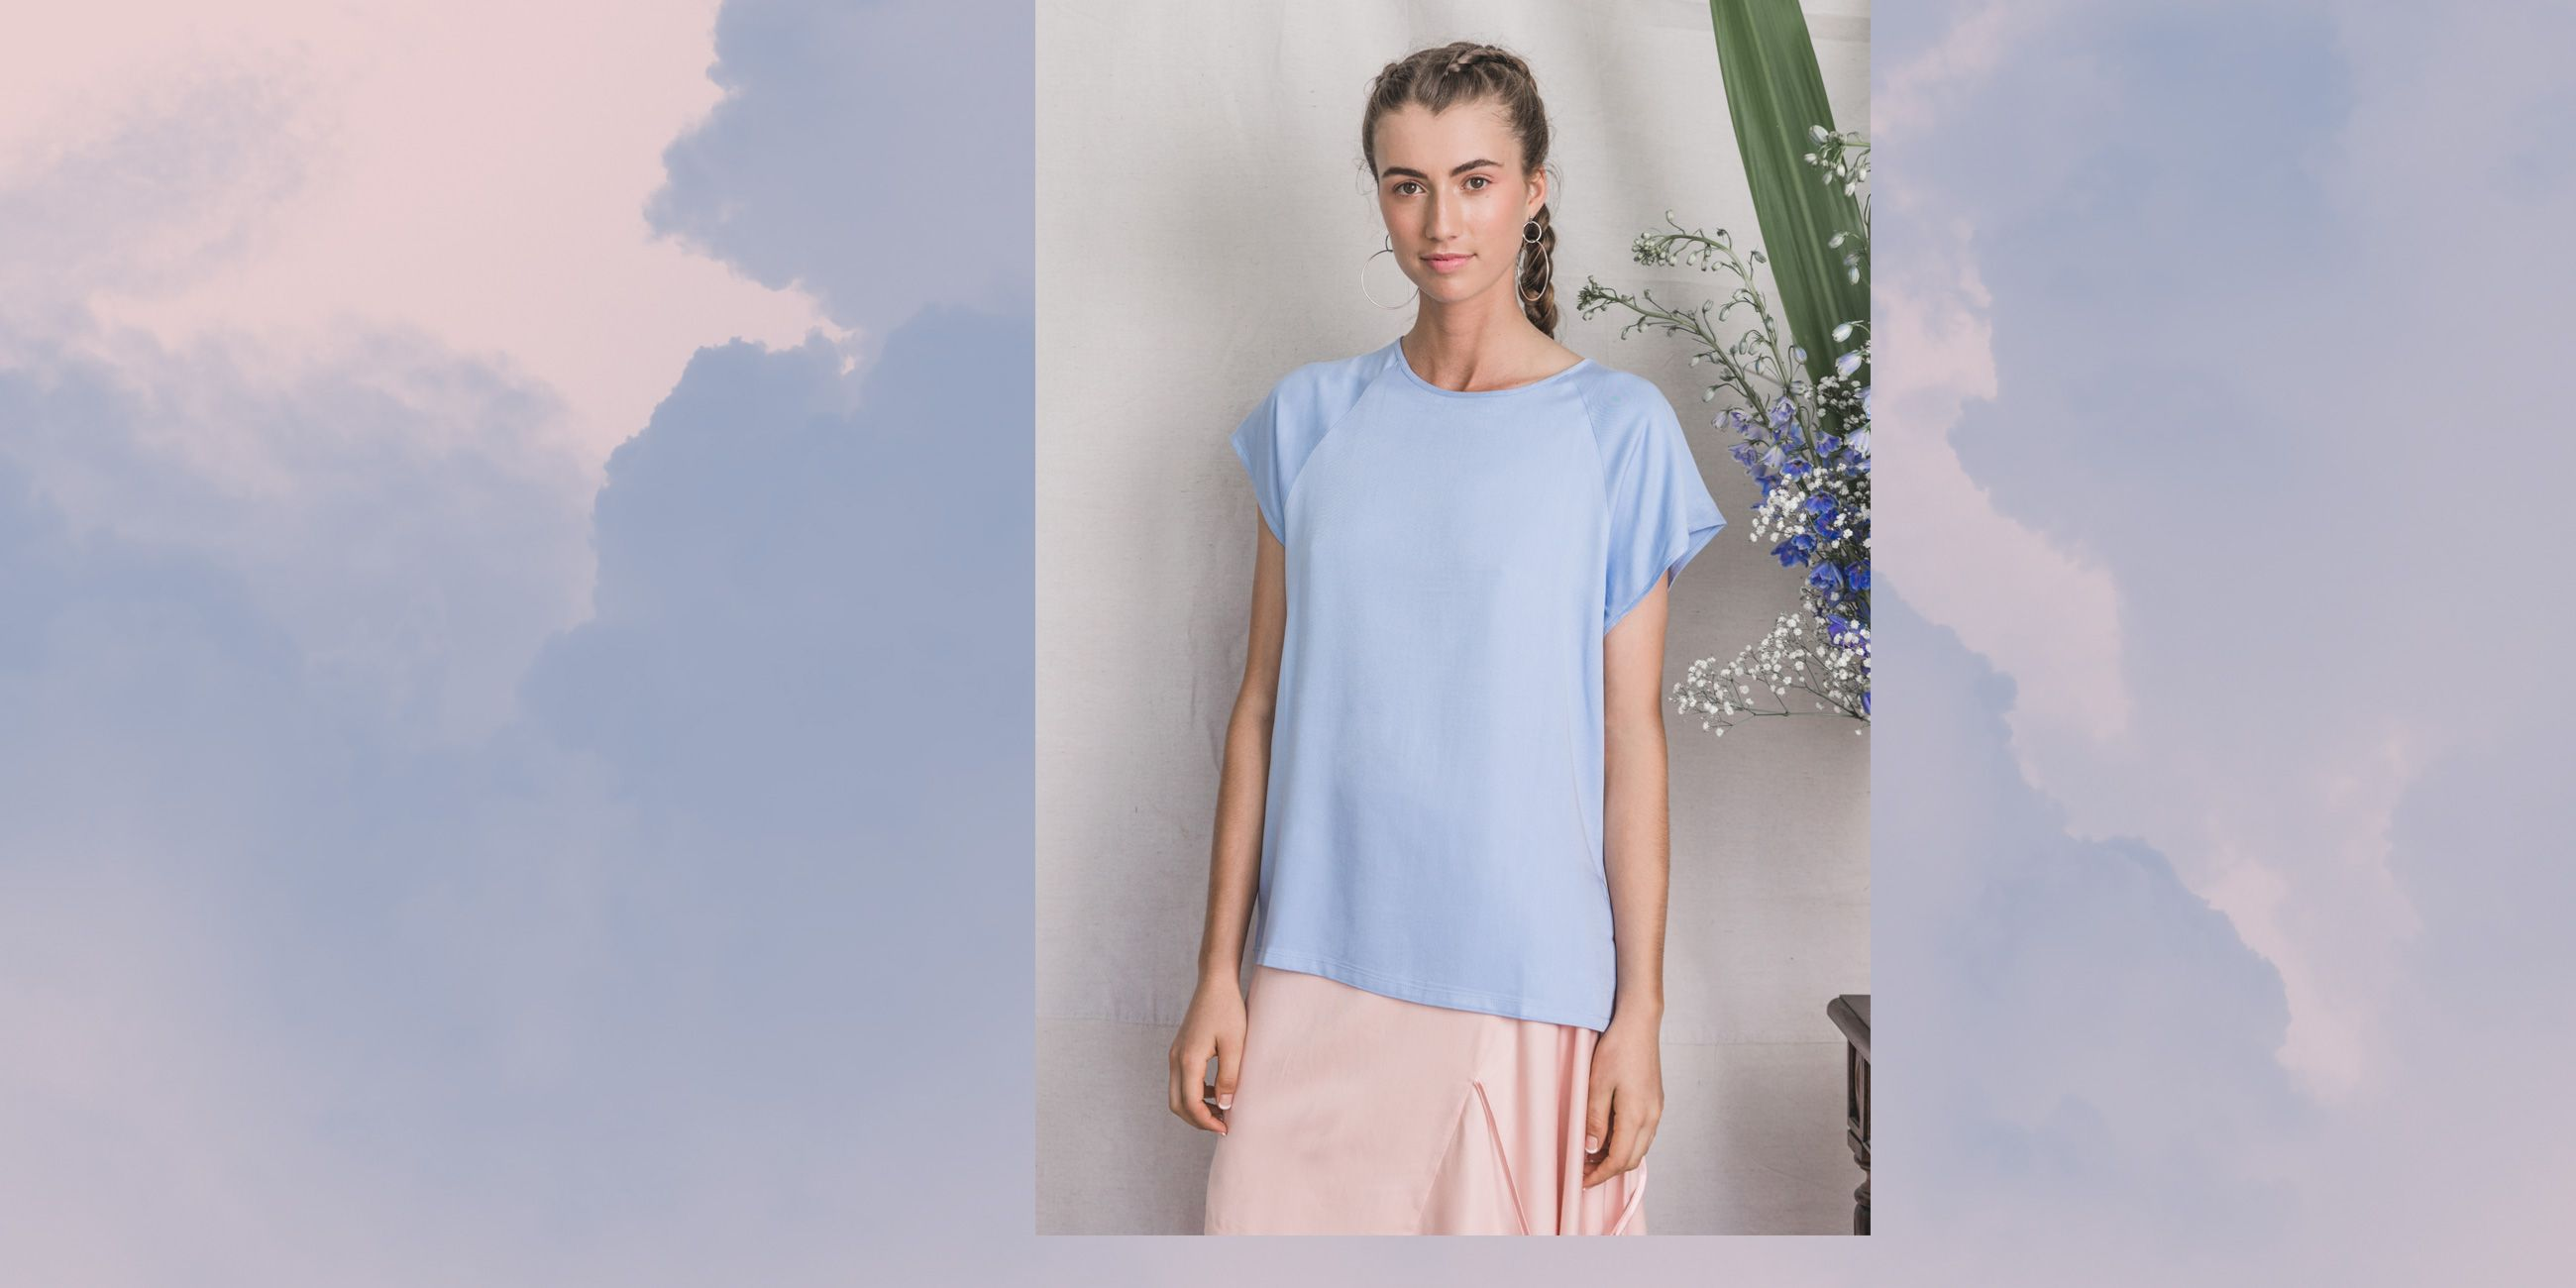 Altair Bamboo Top in Serenity Blue – The Great Beyond 1